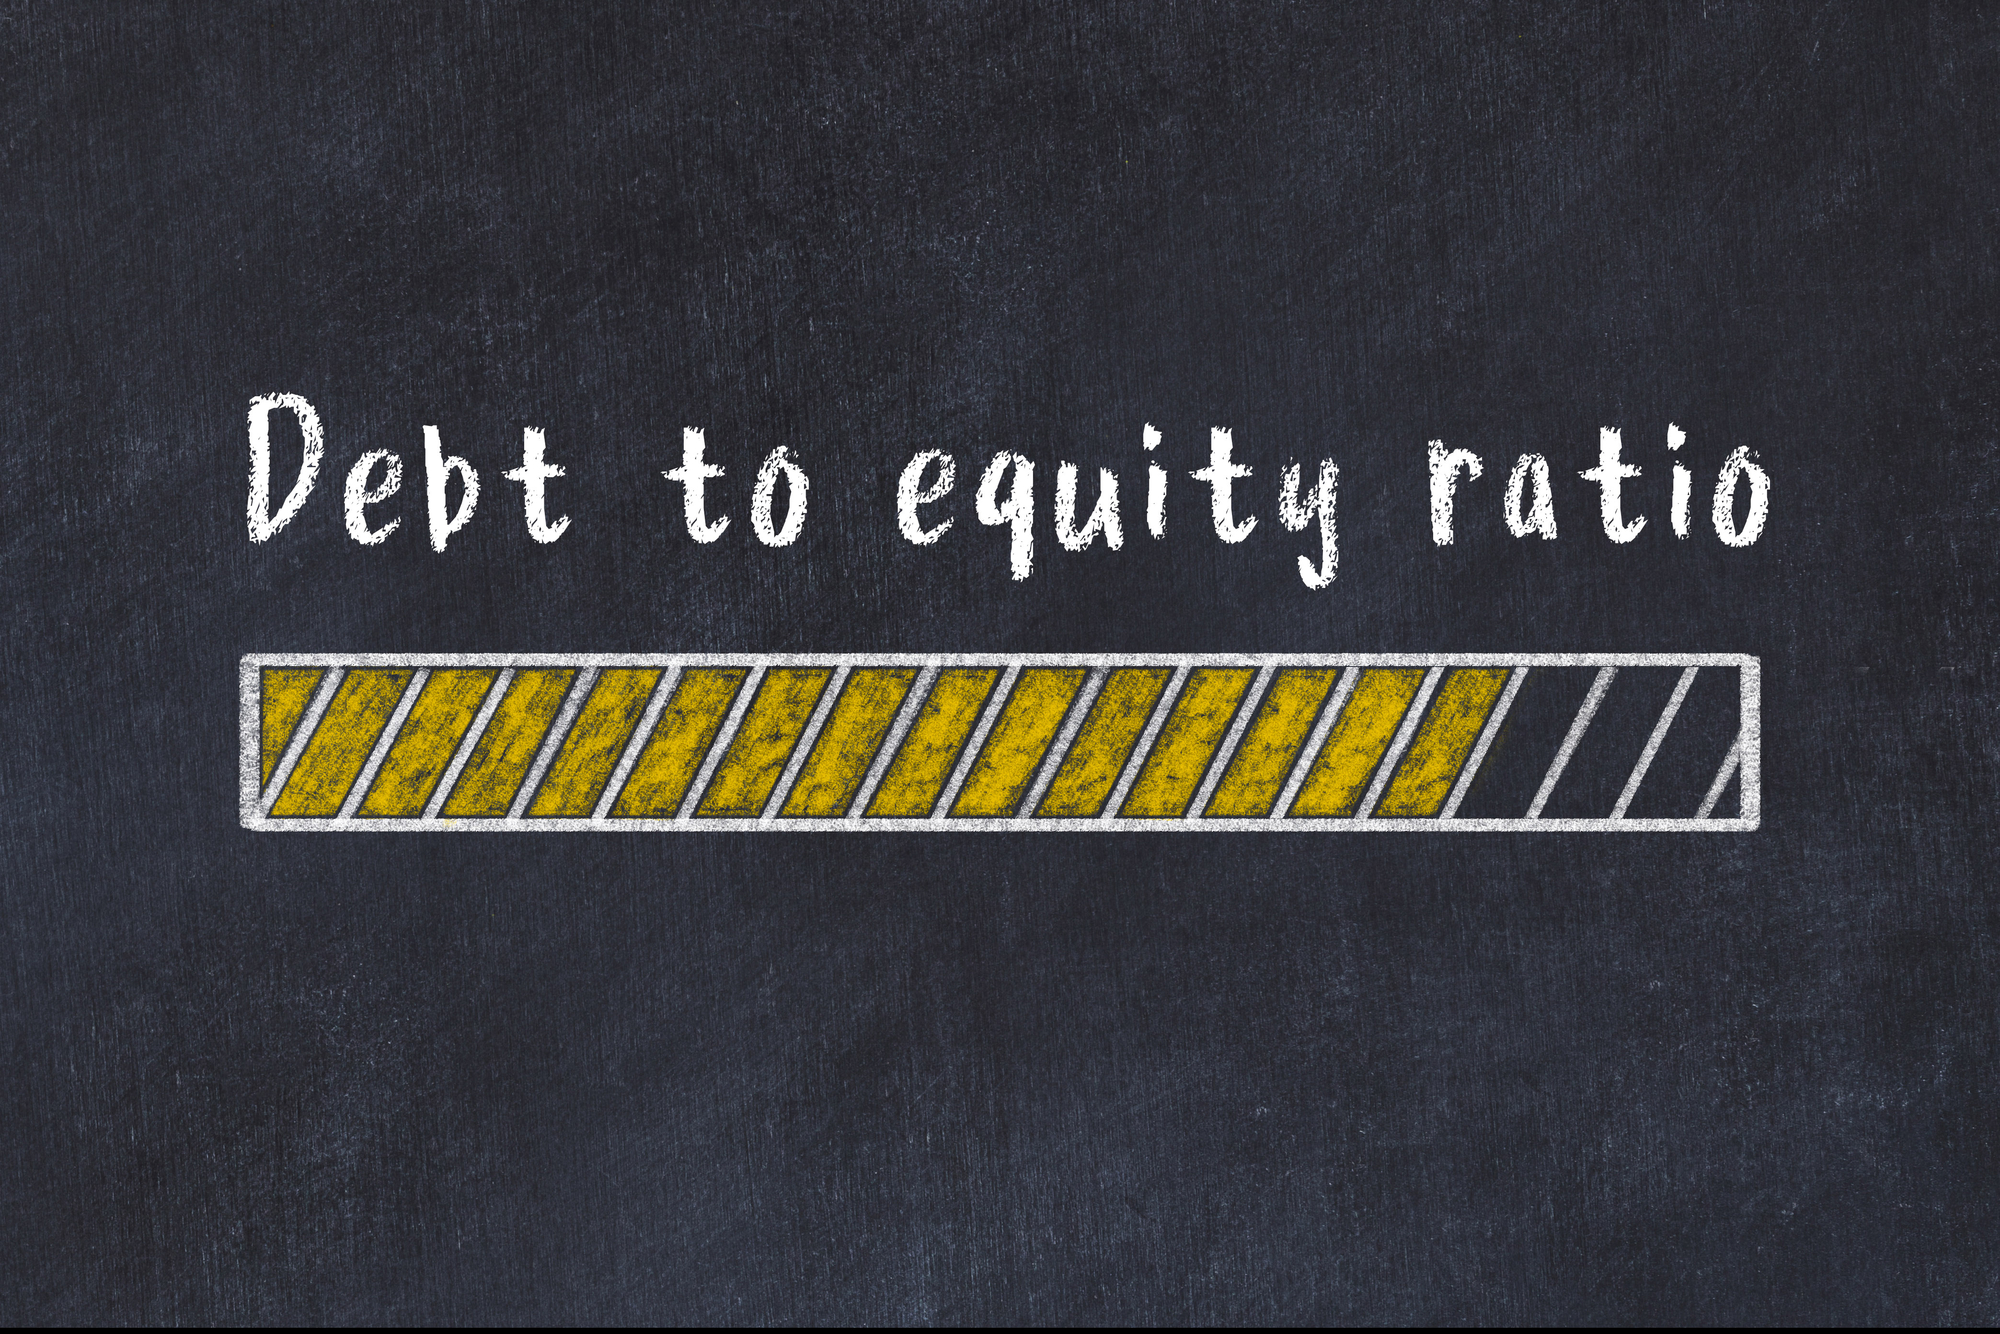 What Is The Debt To Equity Ratio And Why Should You Care?